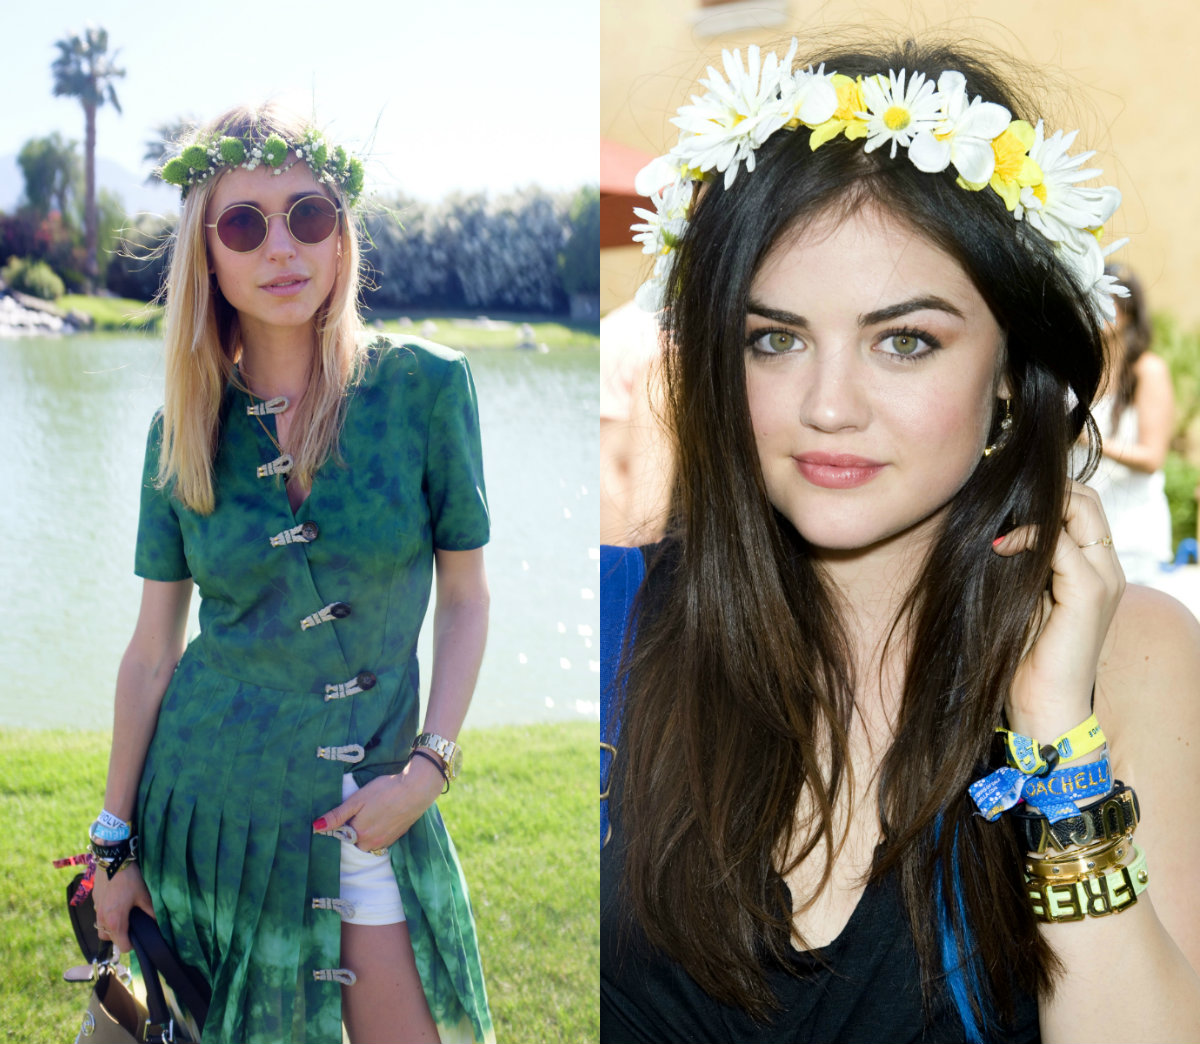 festival hair with flower crowns